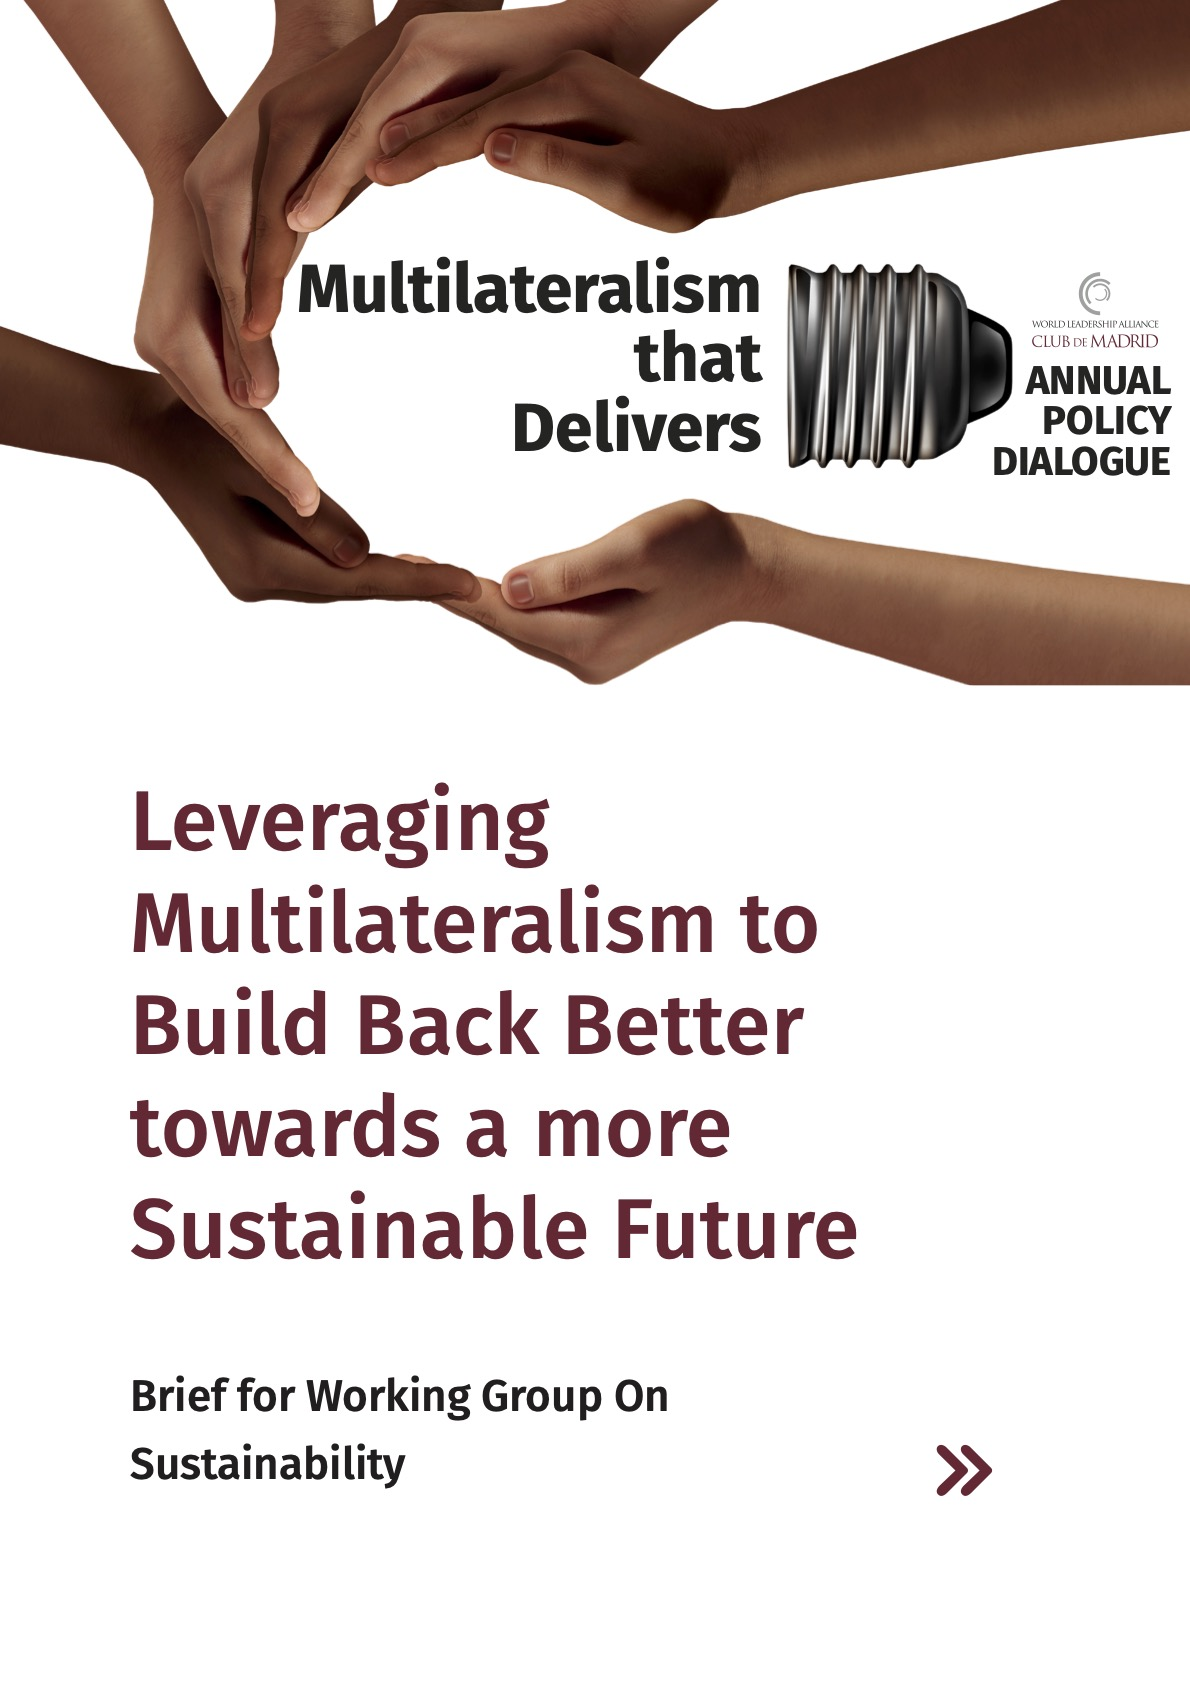 Leveraging Multilateralism to Build Back Better towards a more Sustainable Future